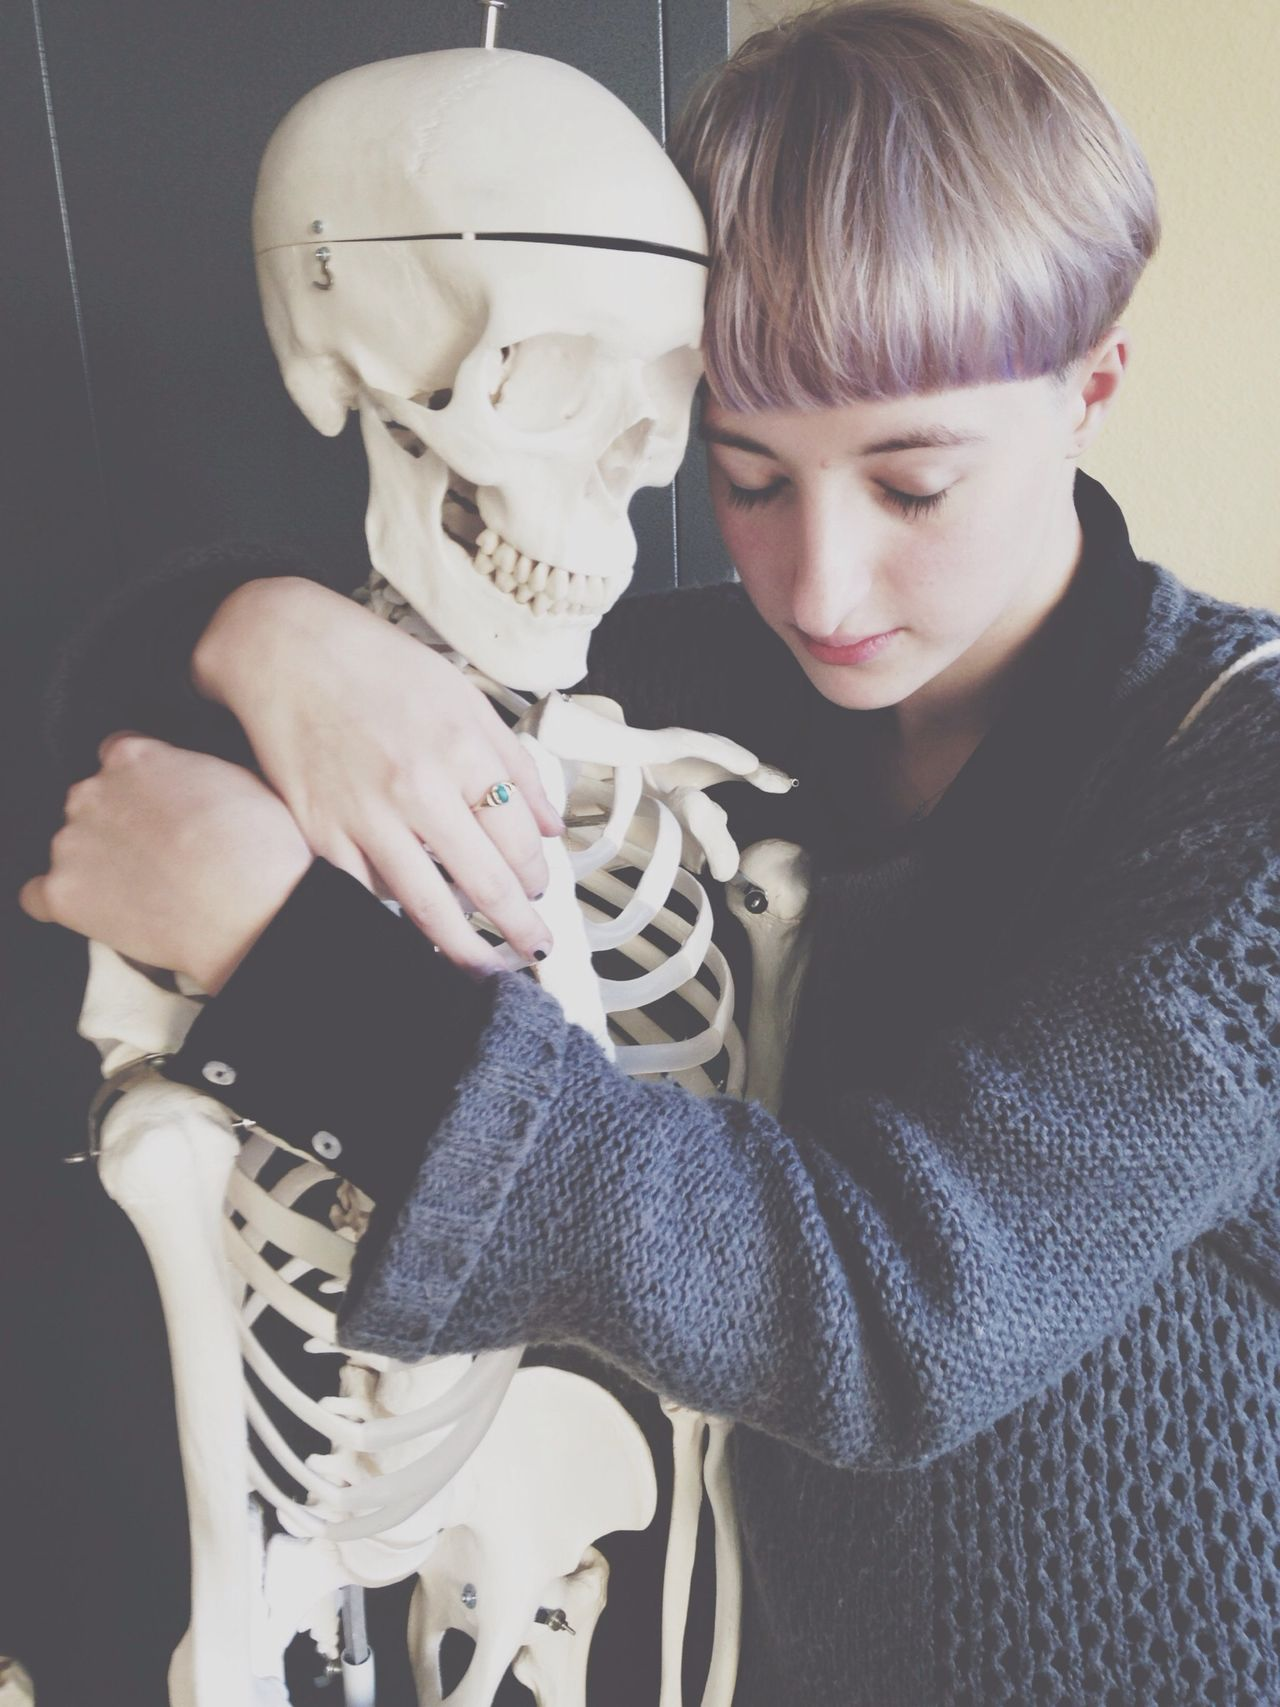 Lovers Selfportrait Steph Filter Skeleton RePicture Love